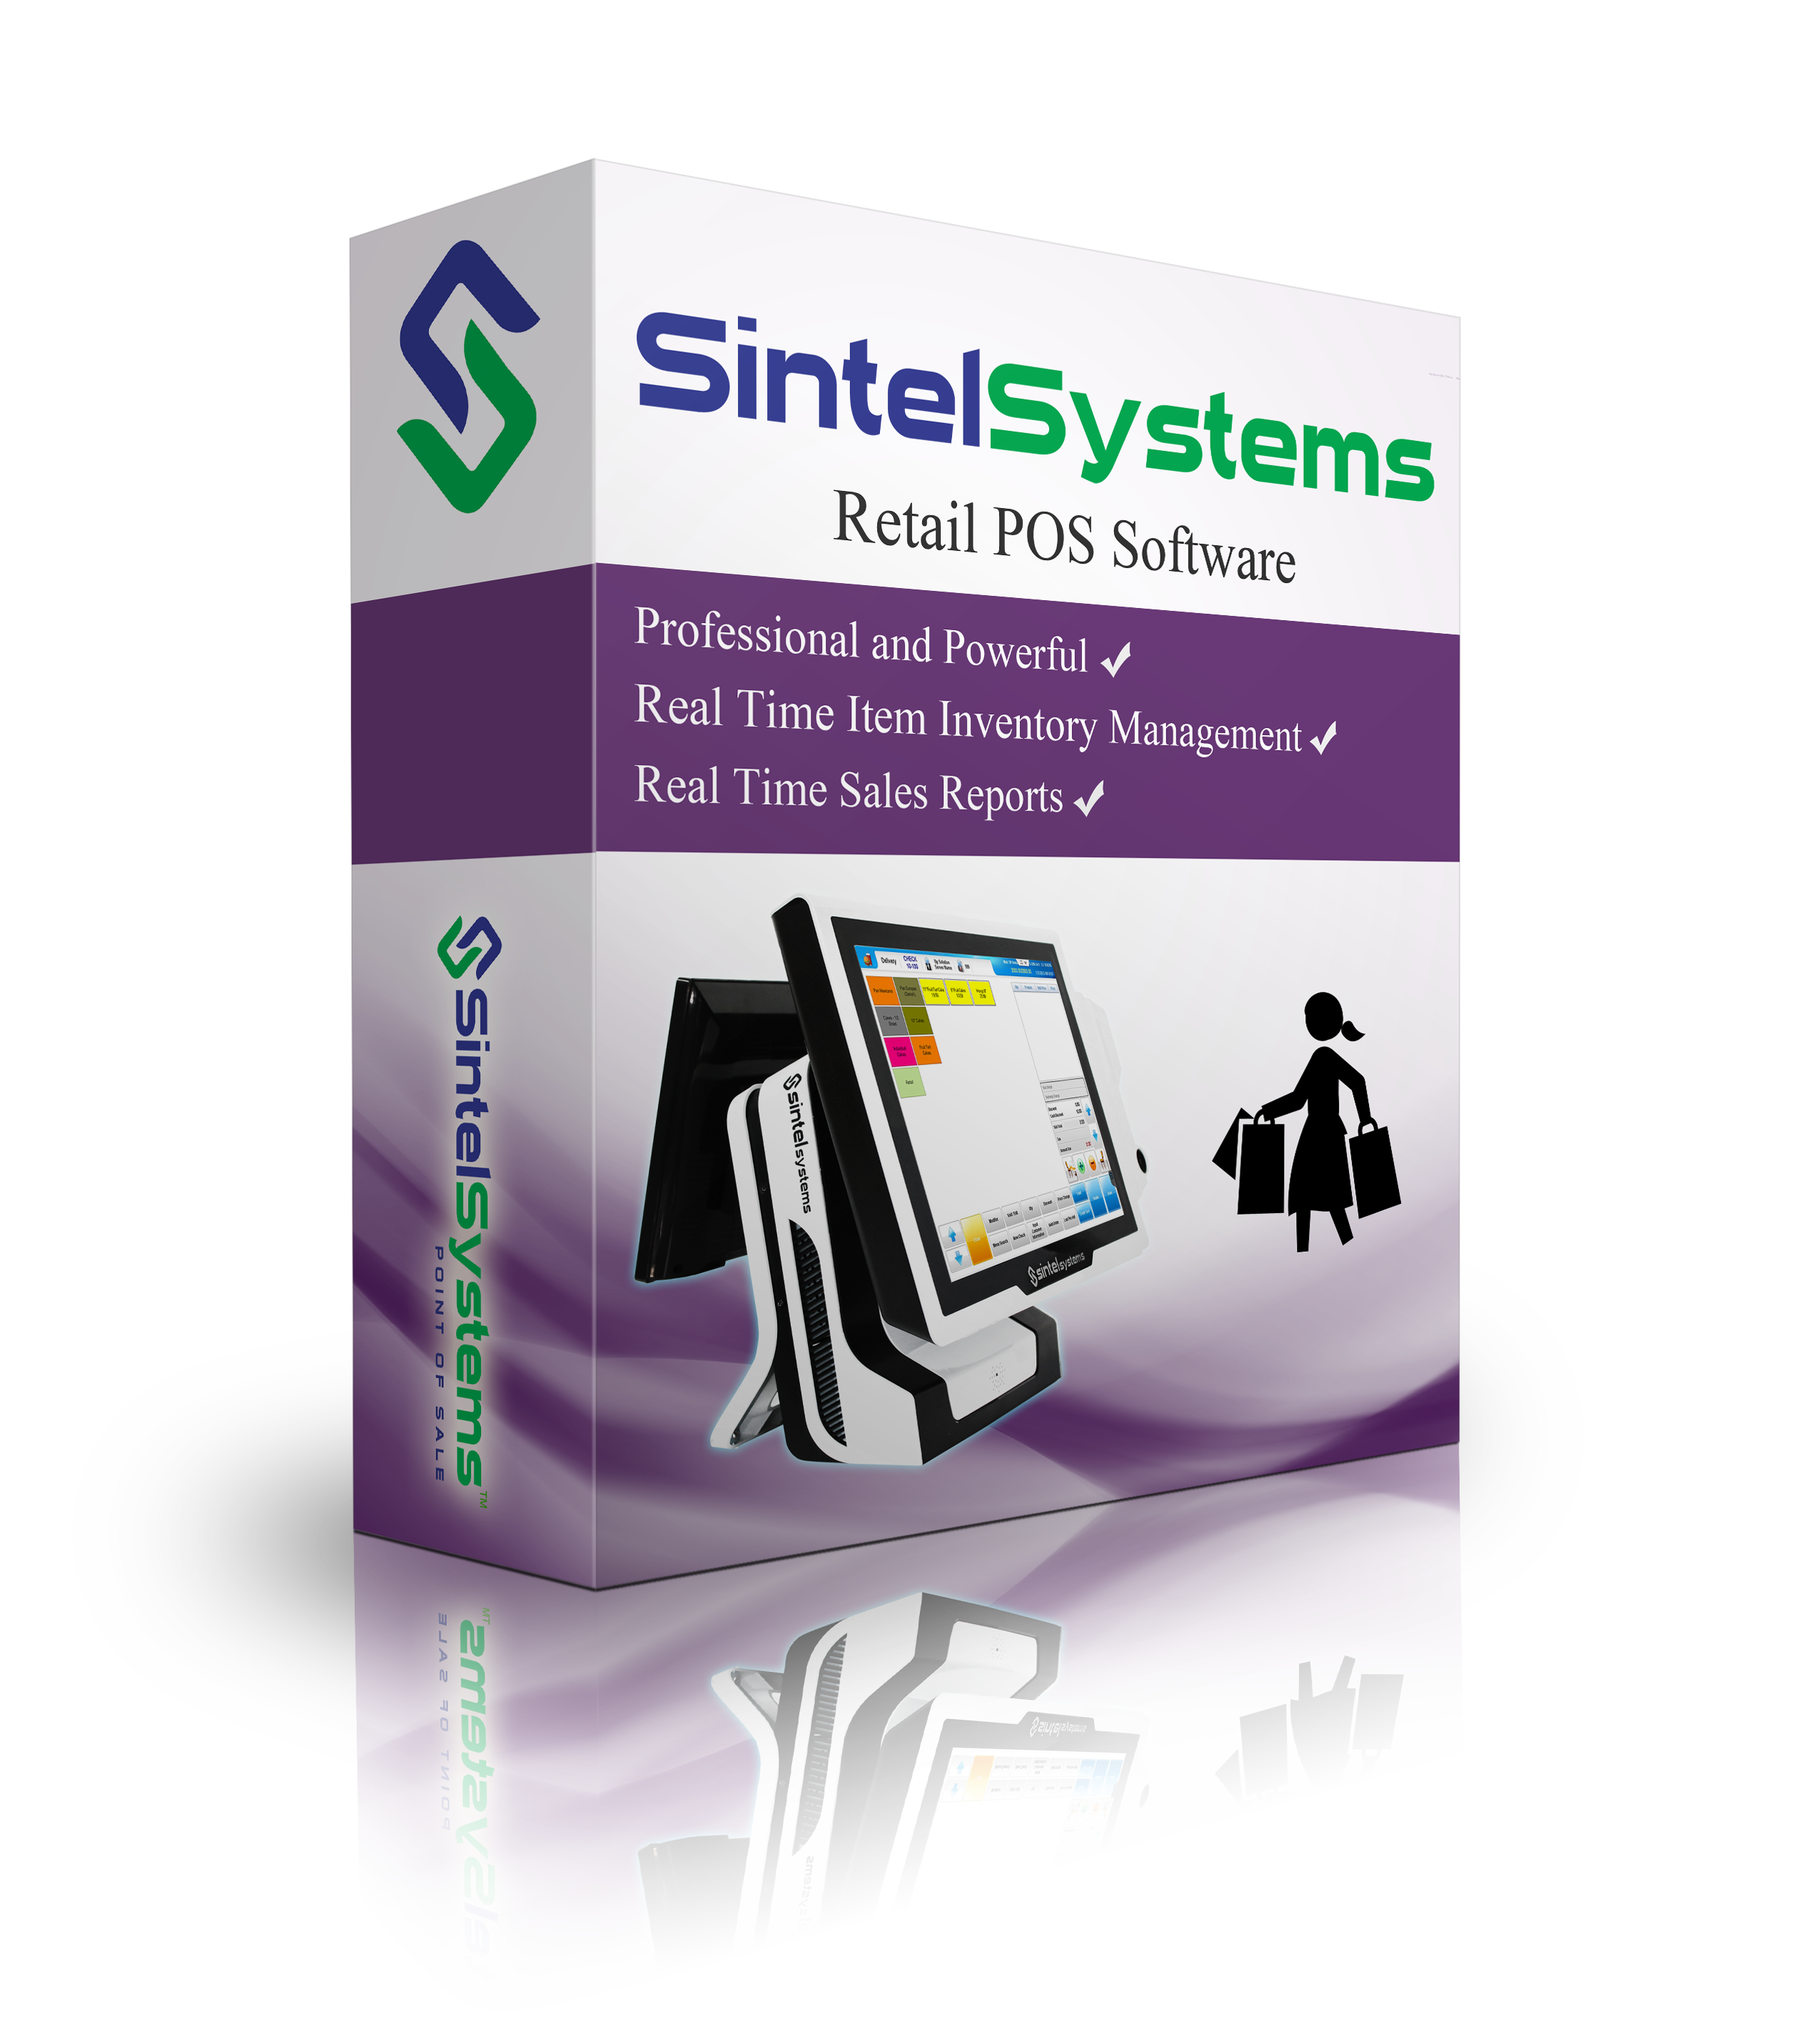 Retail-Point-of-Sale-POS-Software-Sintel-Systems-855-POS-SALE-www.SintelSystems.com